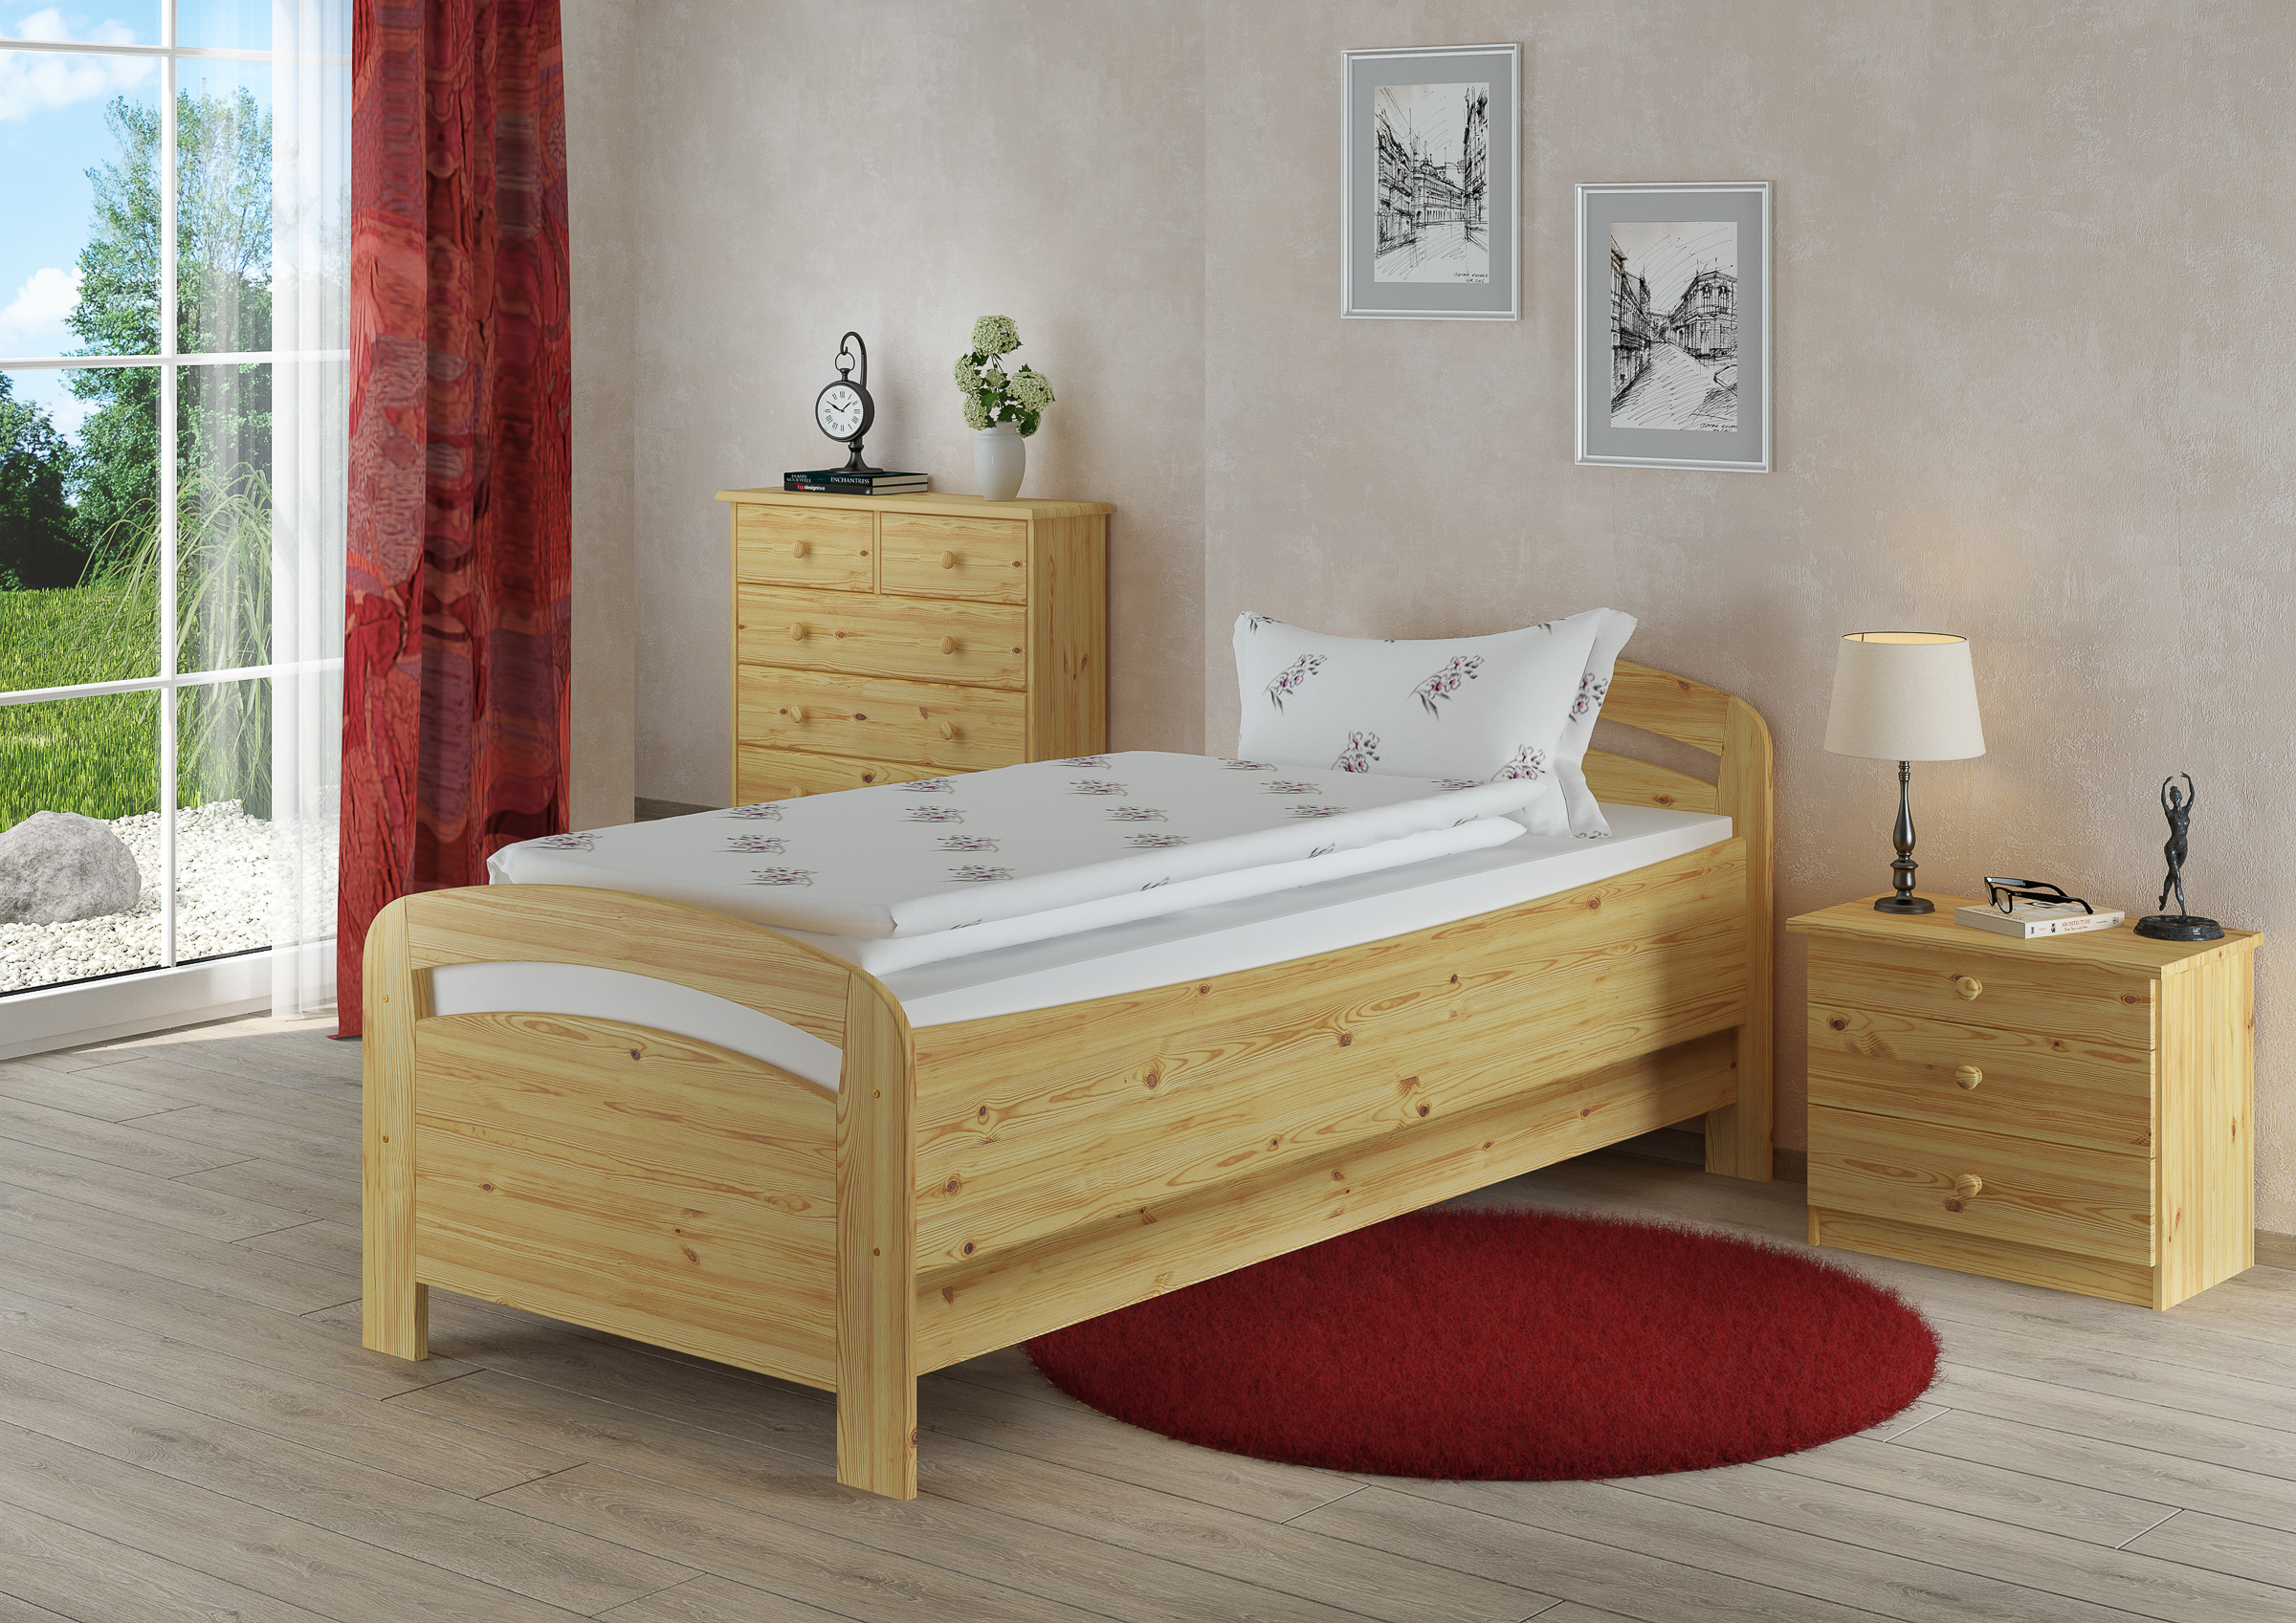 seniorenbett extra hoch einzelbett 90x200 kiefer massivholz holzbett or ebay. Black Bedroom Furniture Sets. Home Design Ideas